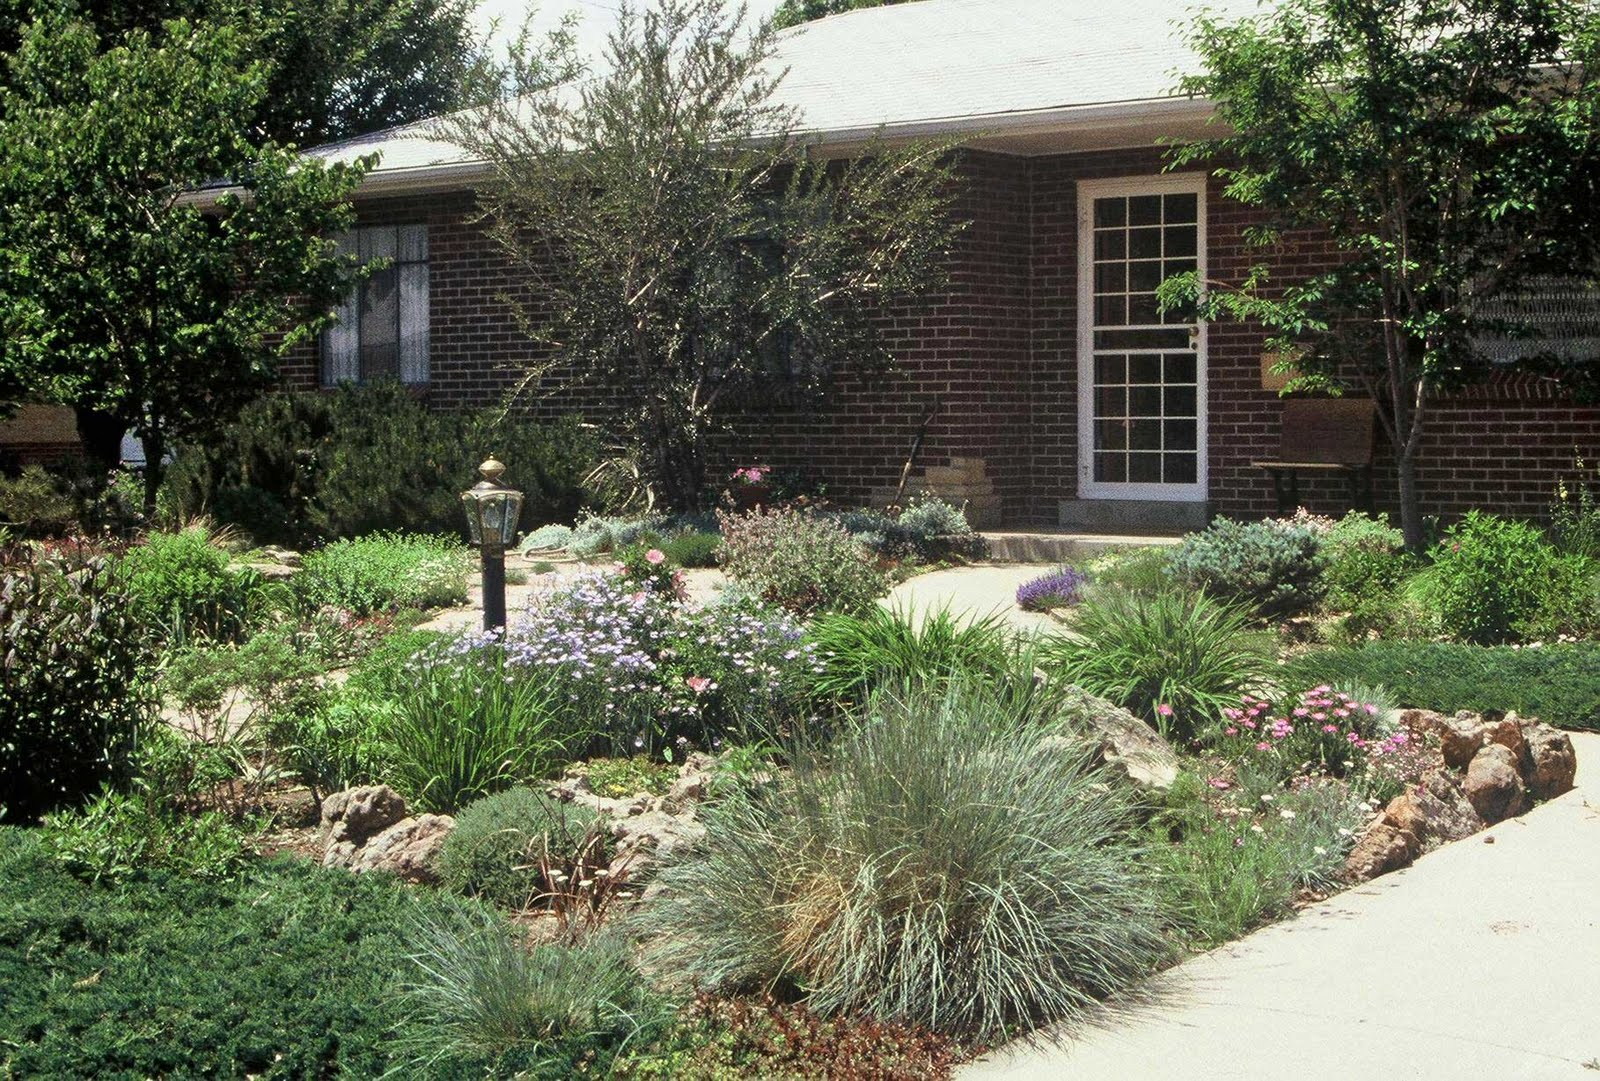 A Shallow Front Yard Is Given More Depth With Added Paths And Sculptural Plantings